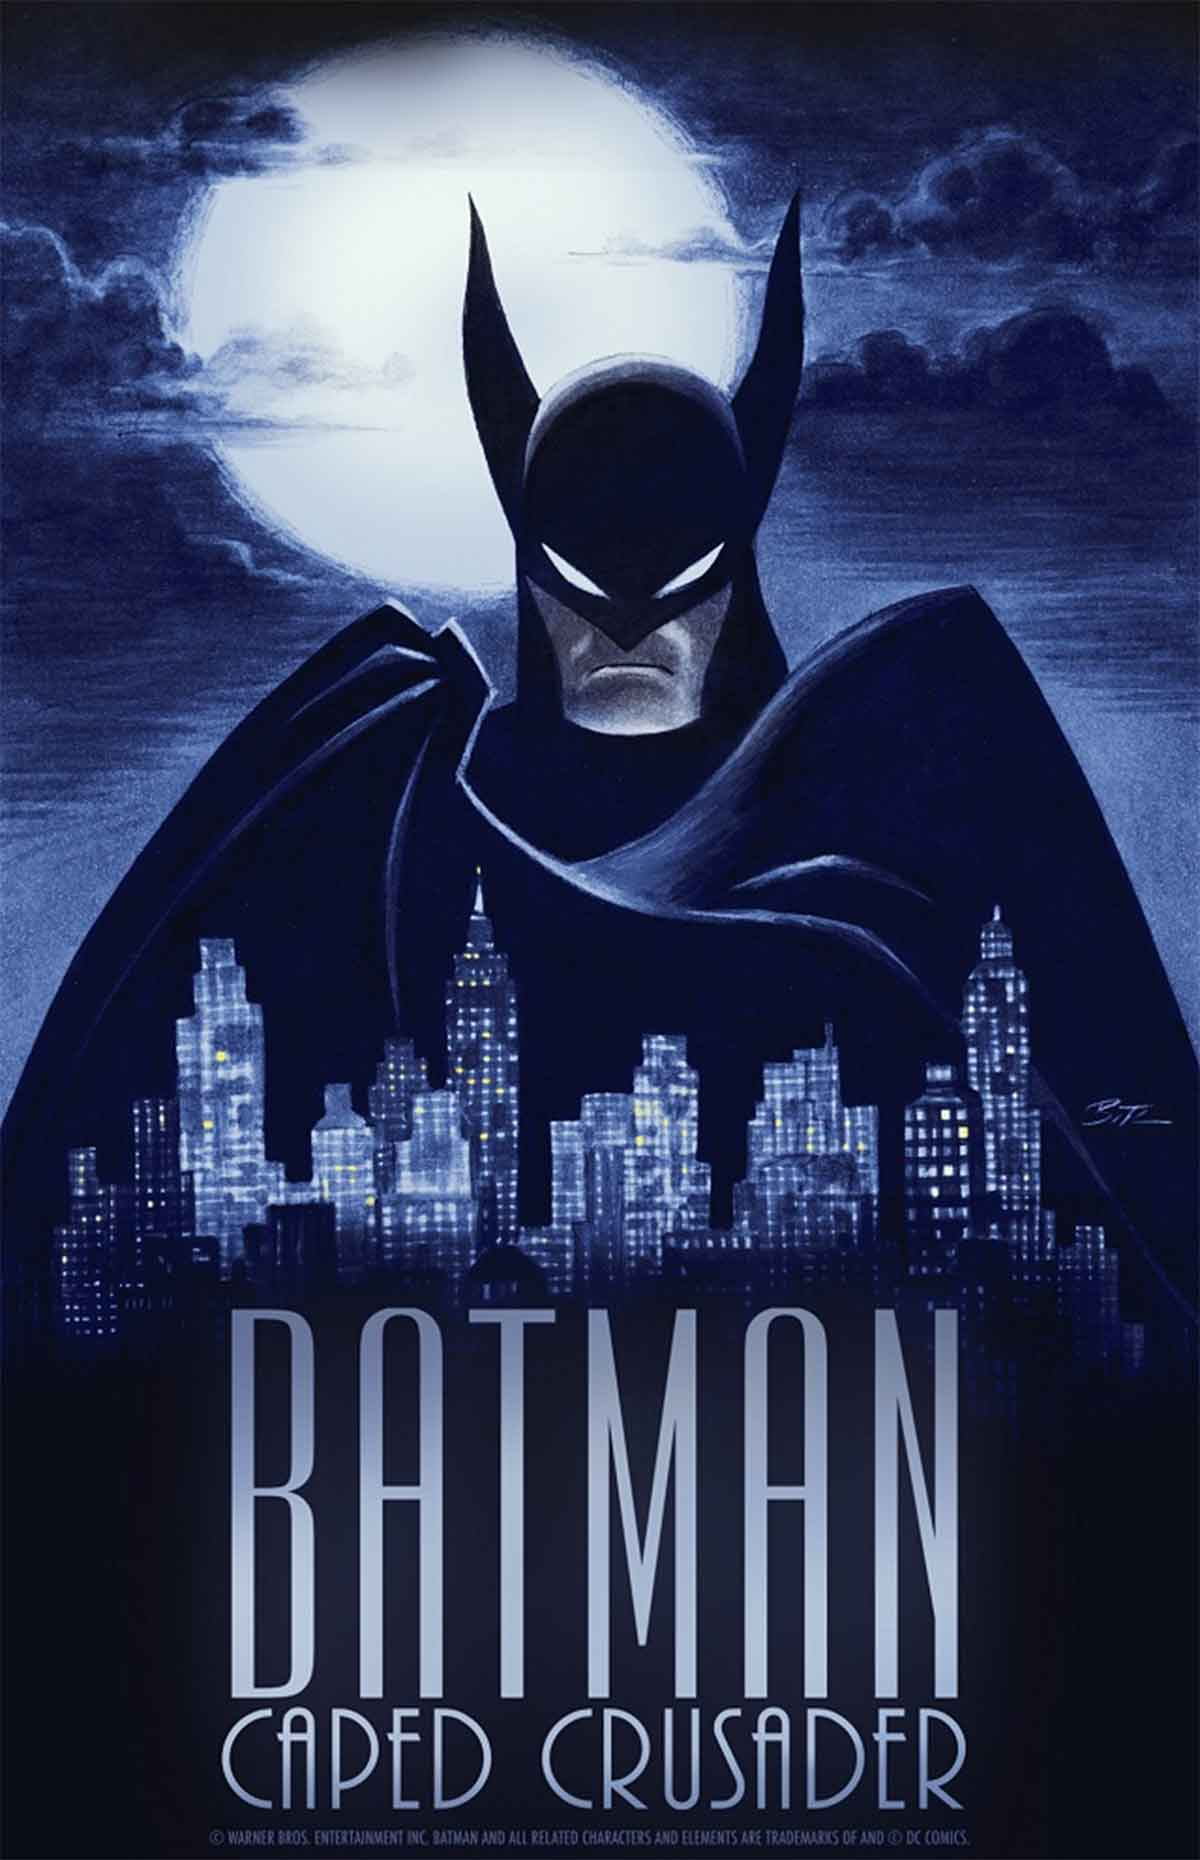 They will make a spectacular Batman animation series